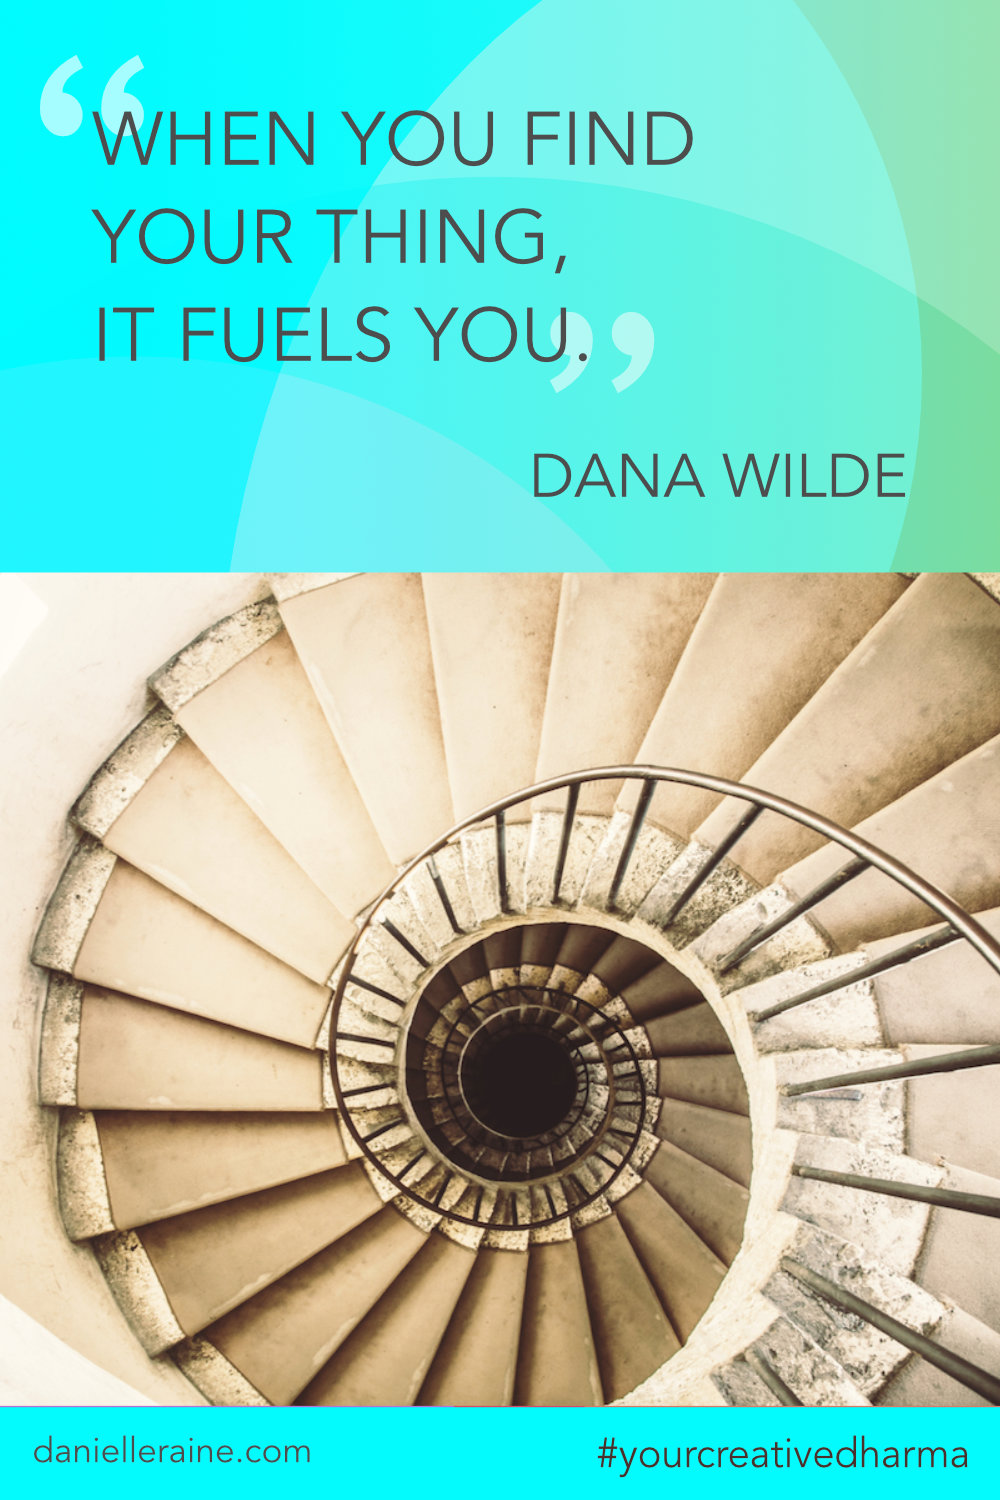 Your Creative Dharma quote Dana Wilde